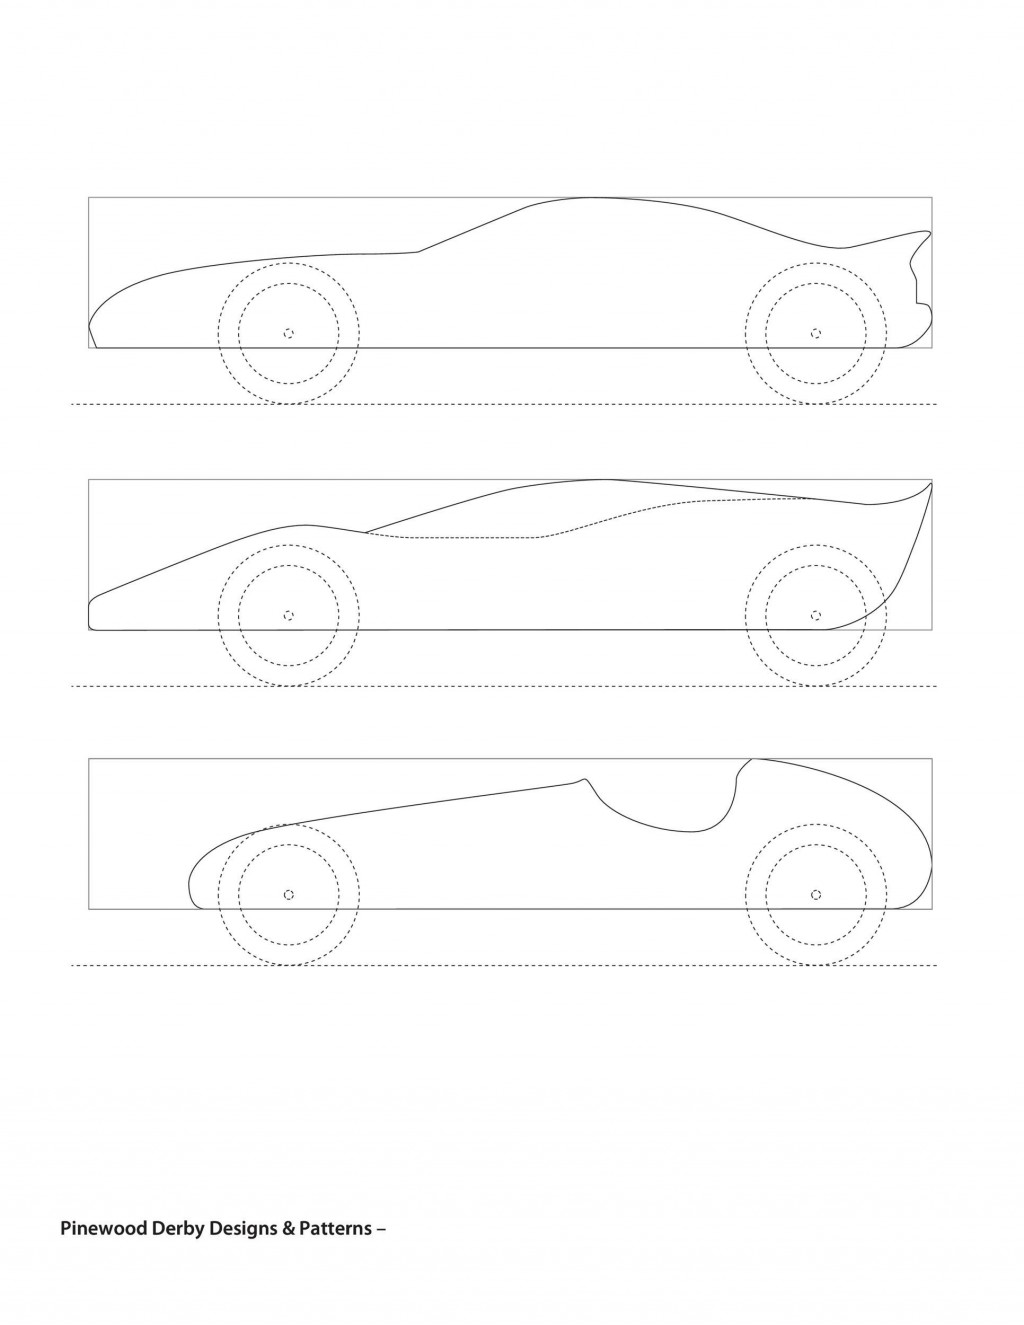 007 Incredible Pinewood Derby Car Design Template High Def  Fast WedgeLarge